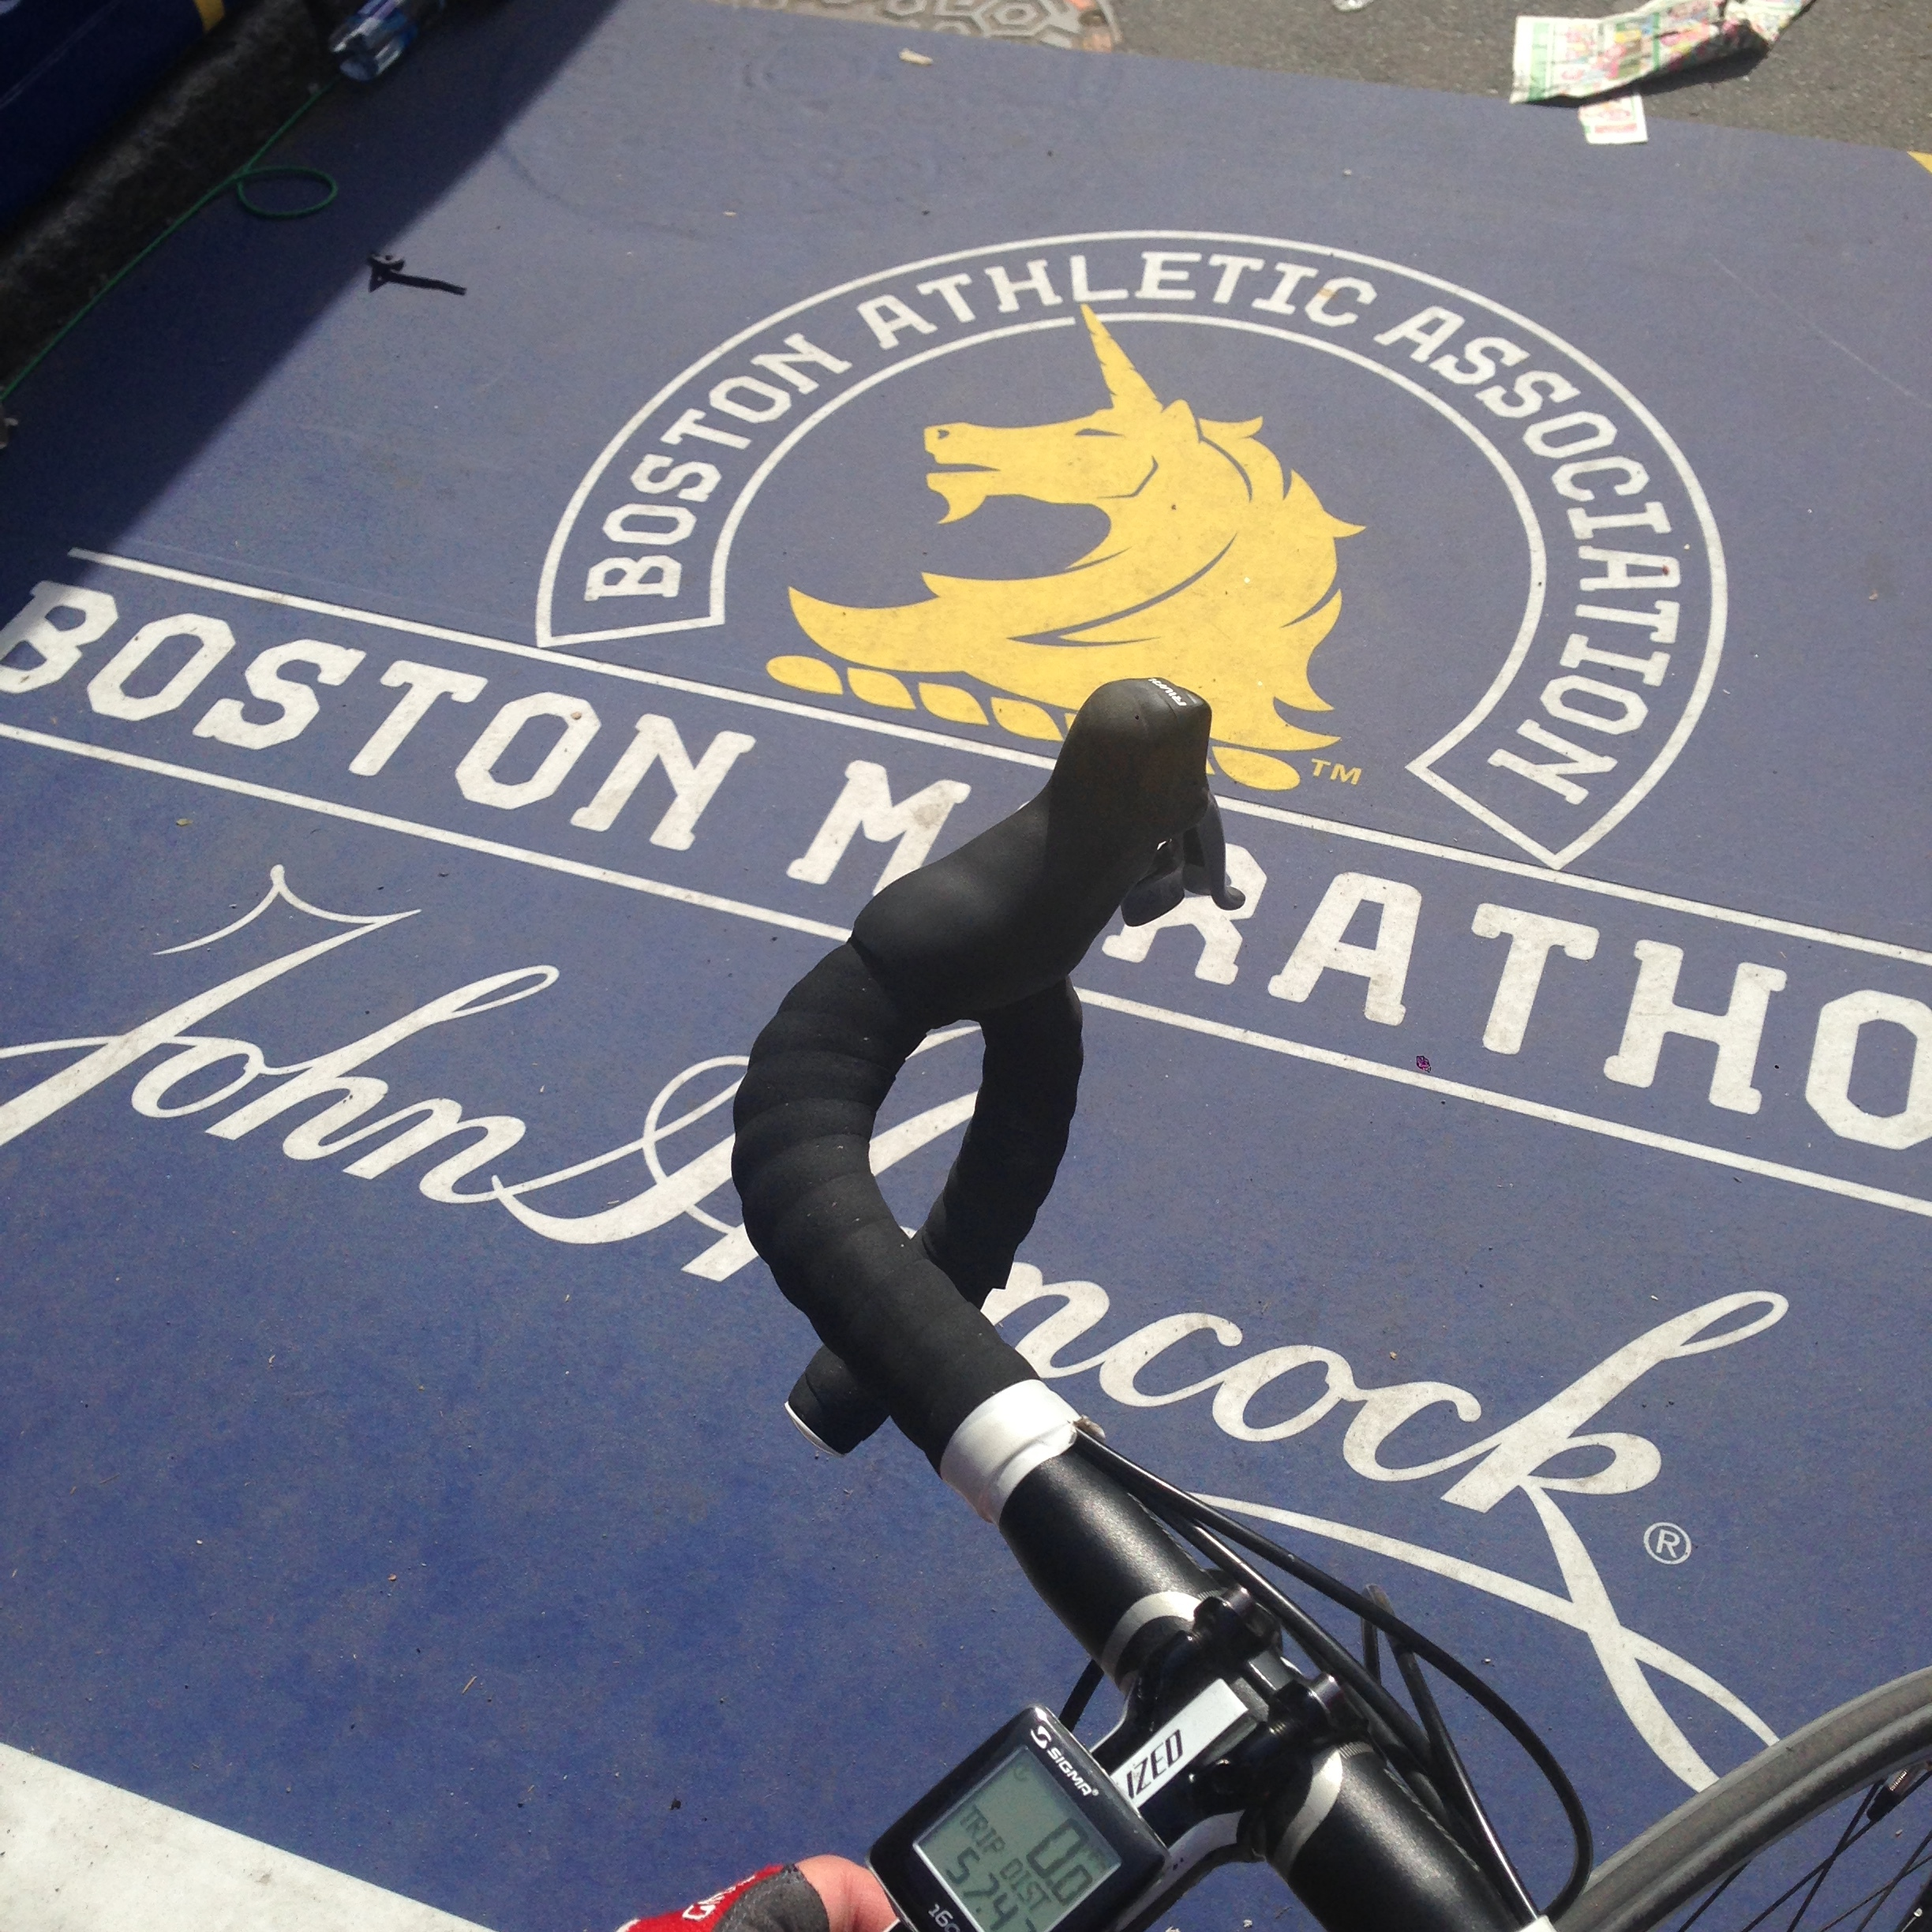 Boston Marathan Finish Line, Boylston St